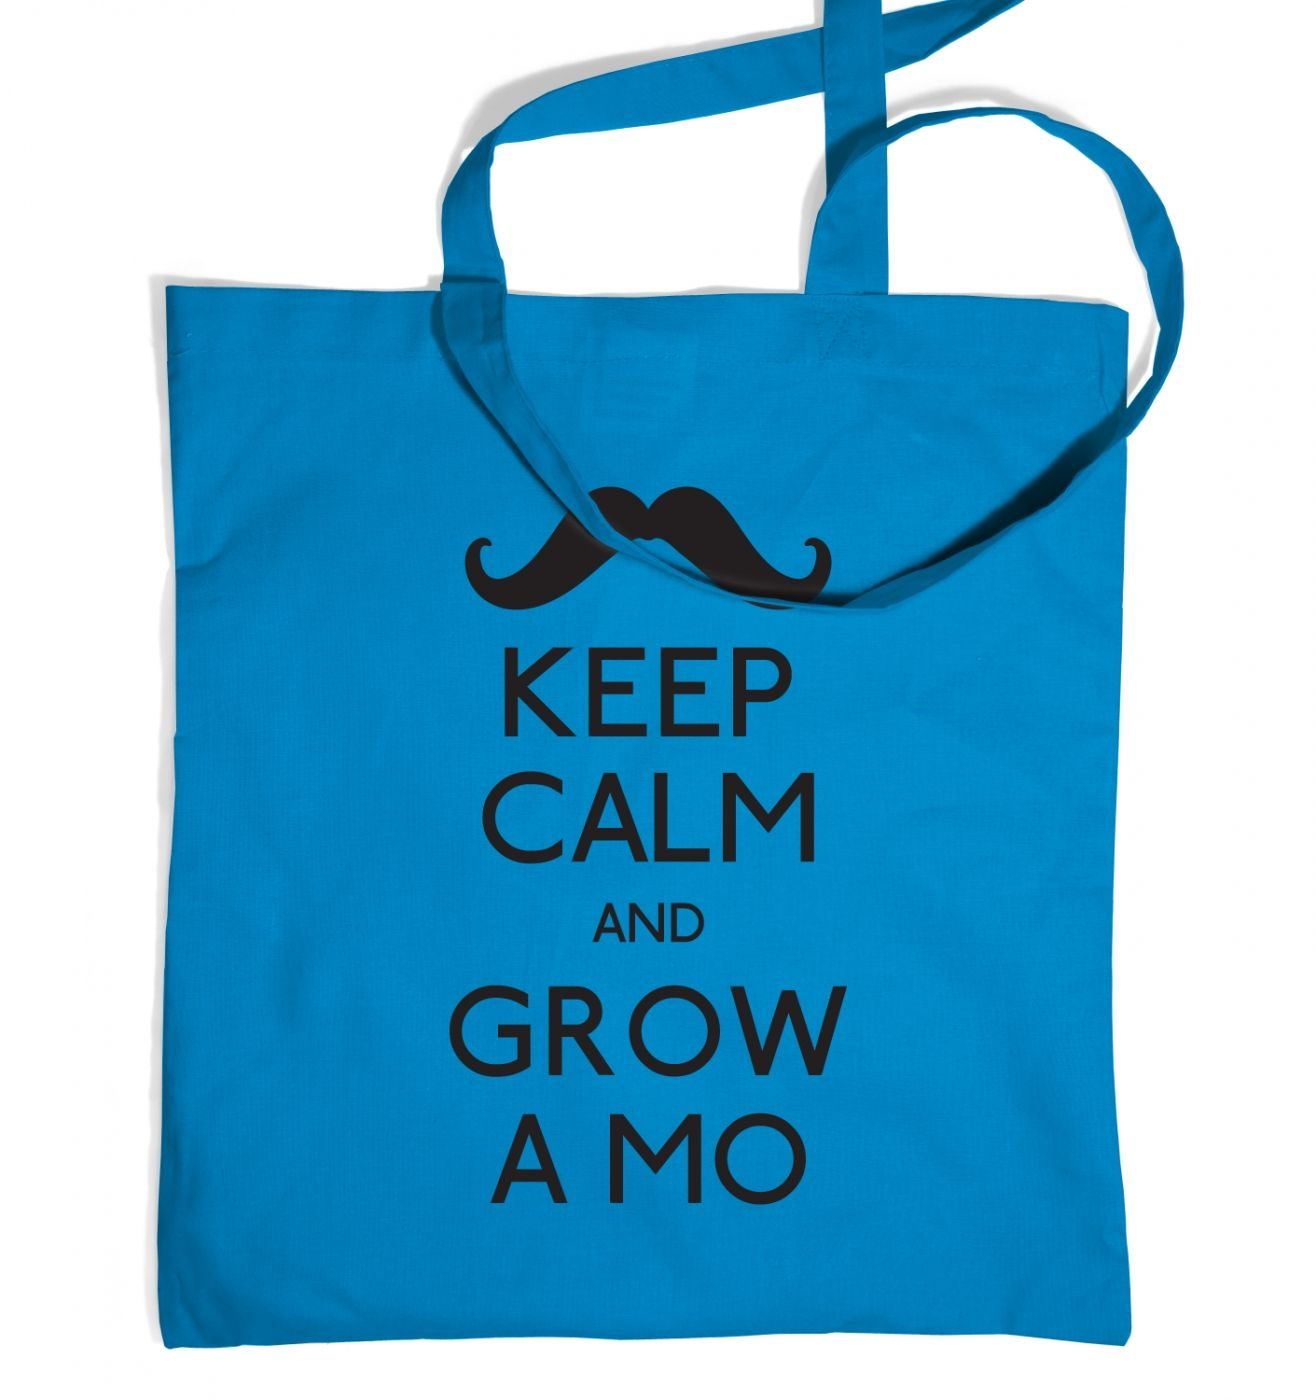 Keep Calm and Grow a Mo tote bag